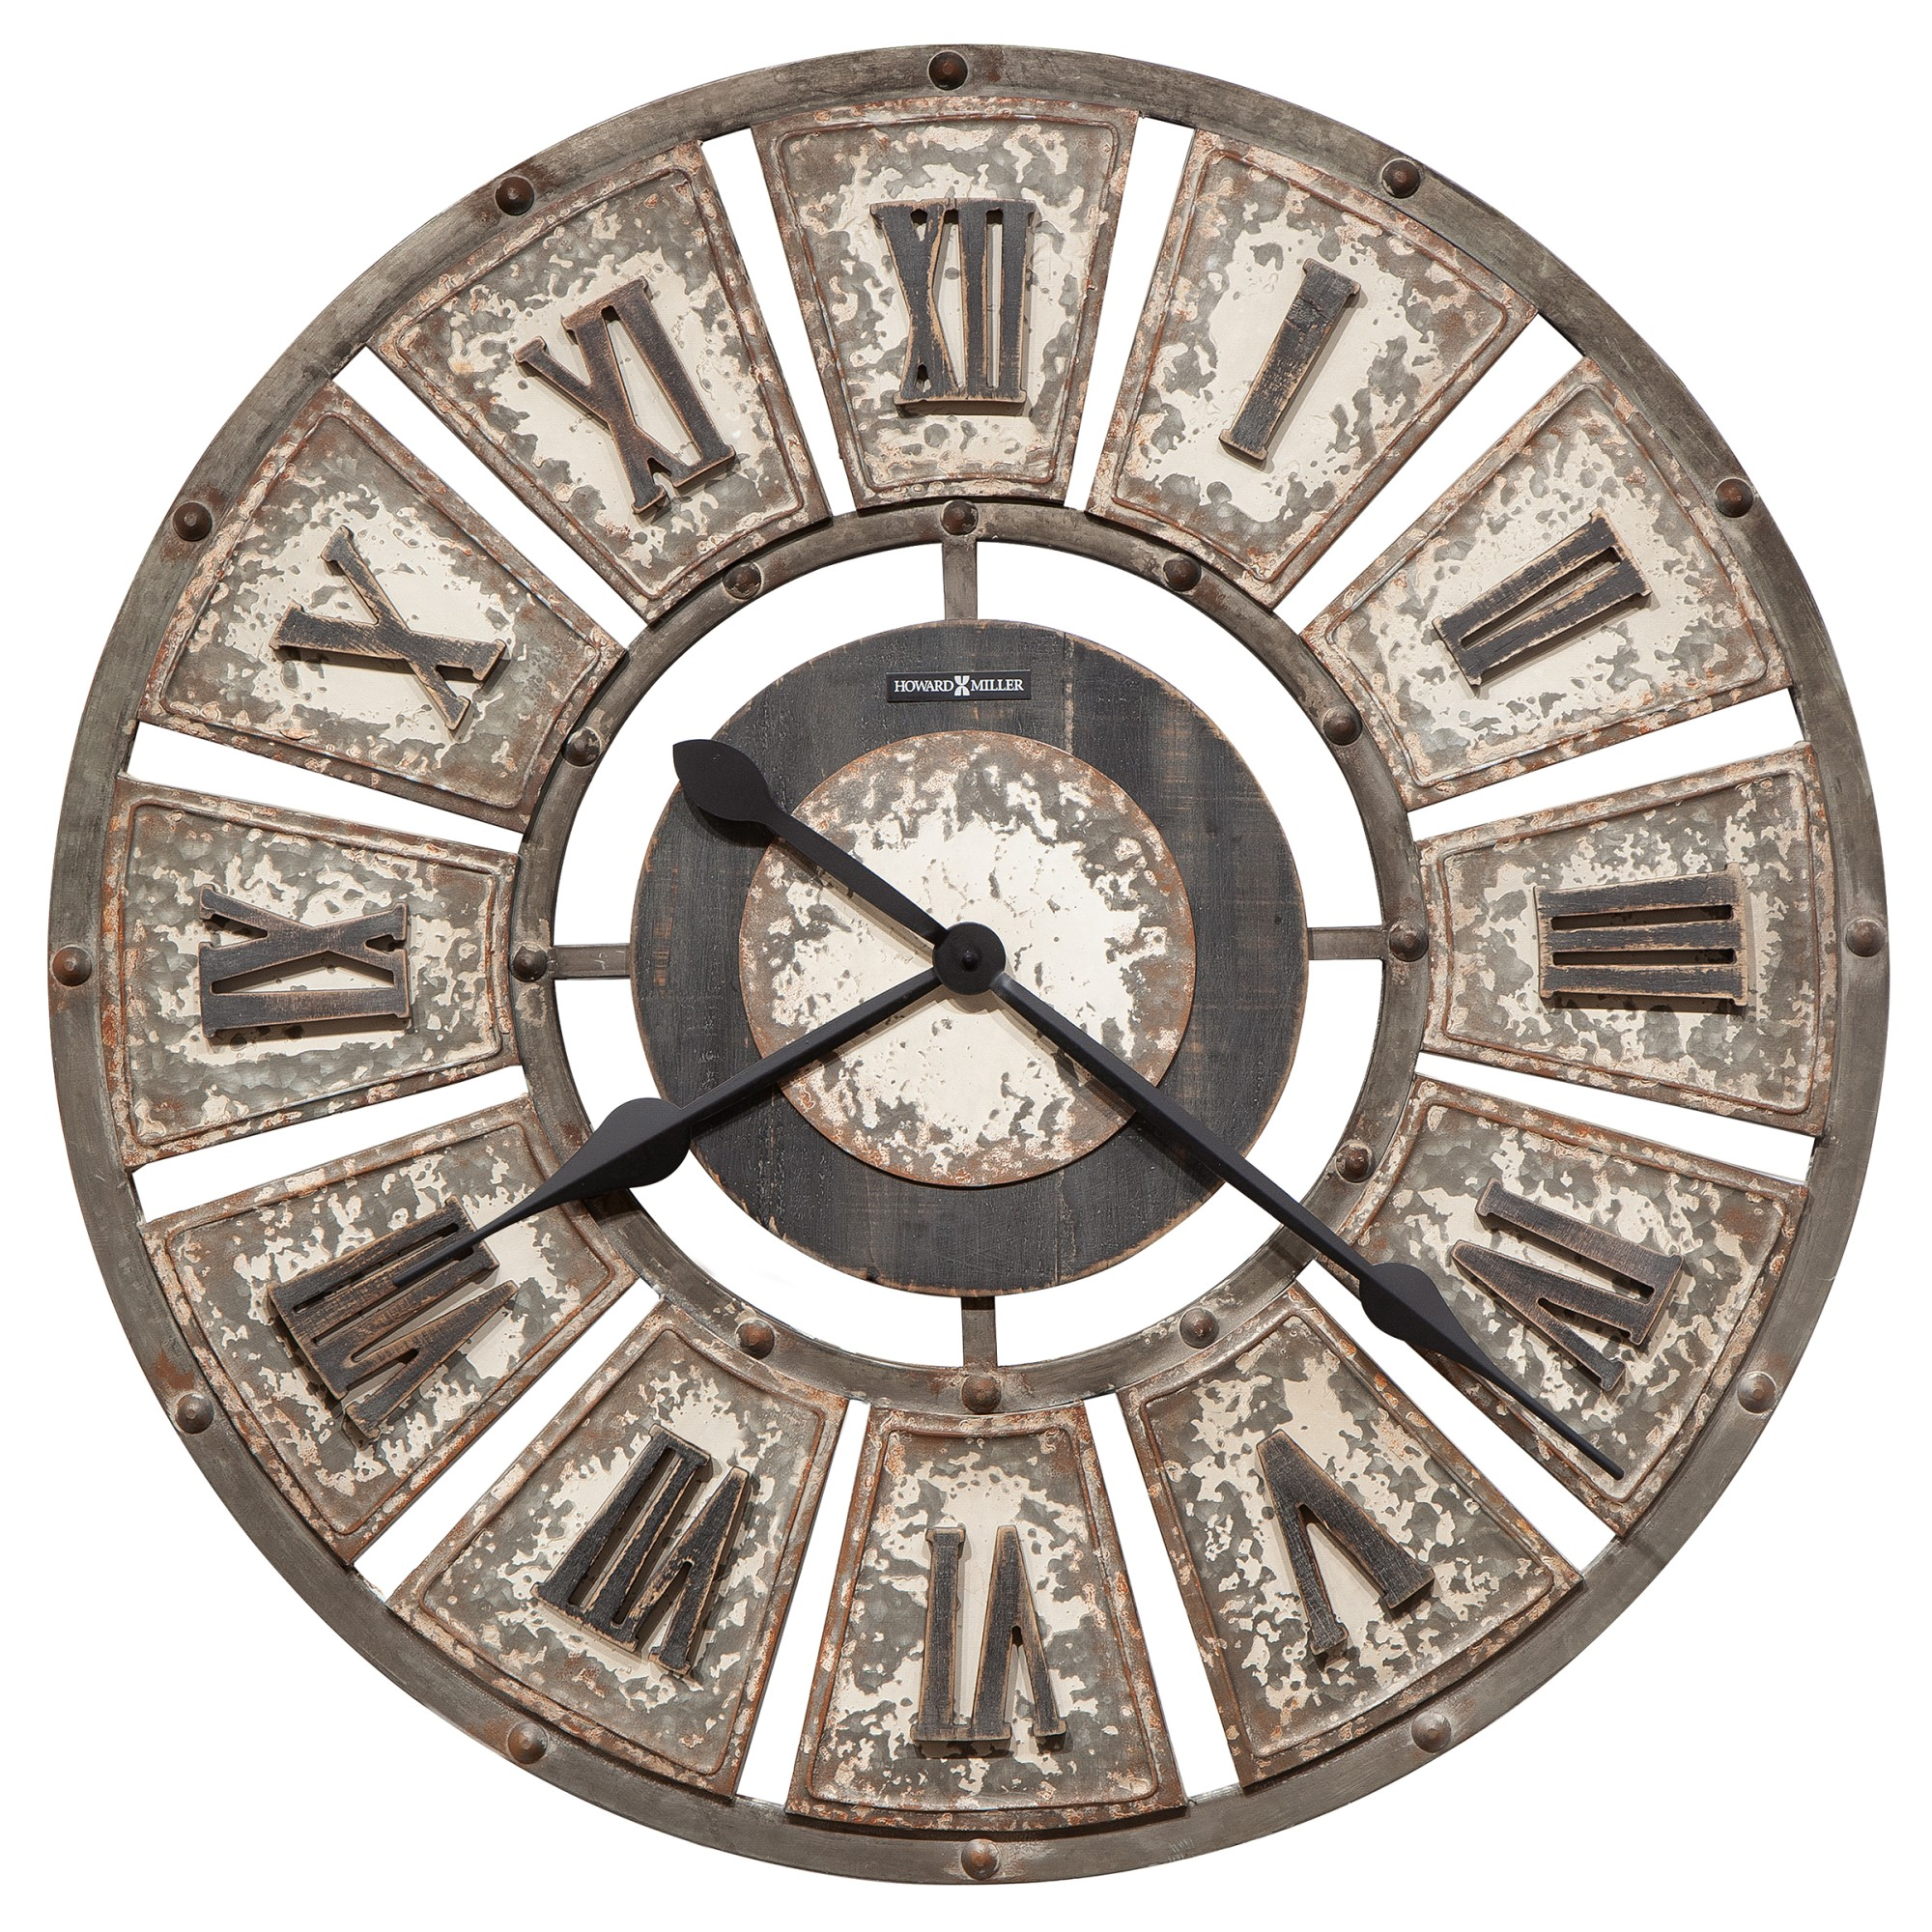 Image for 625-700 Edon Wall Clock from Howard Miller Official Website